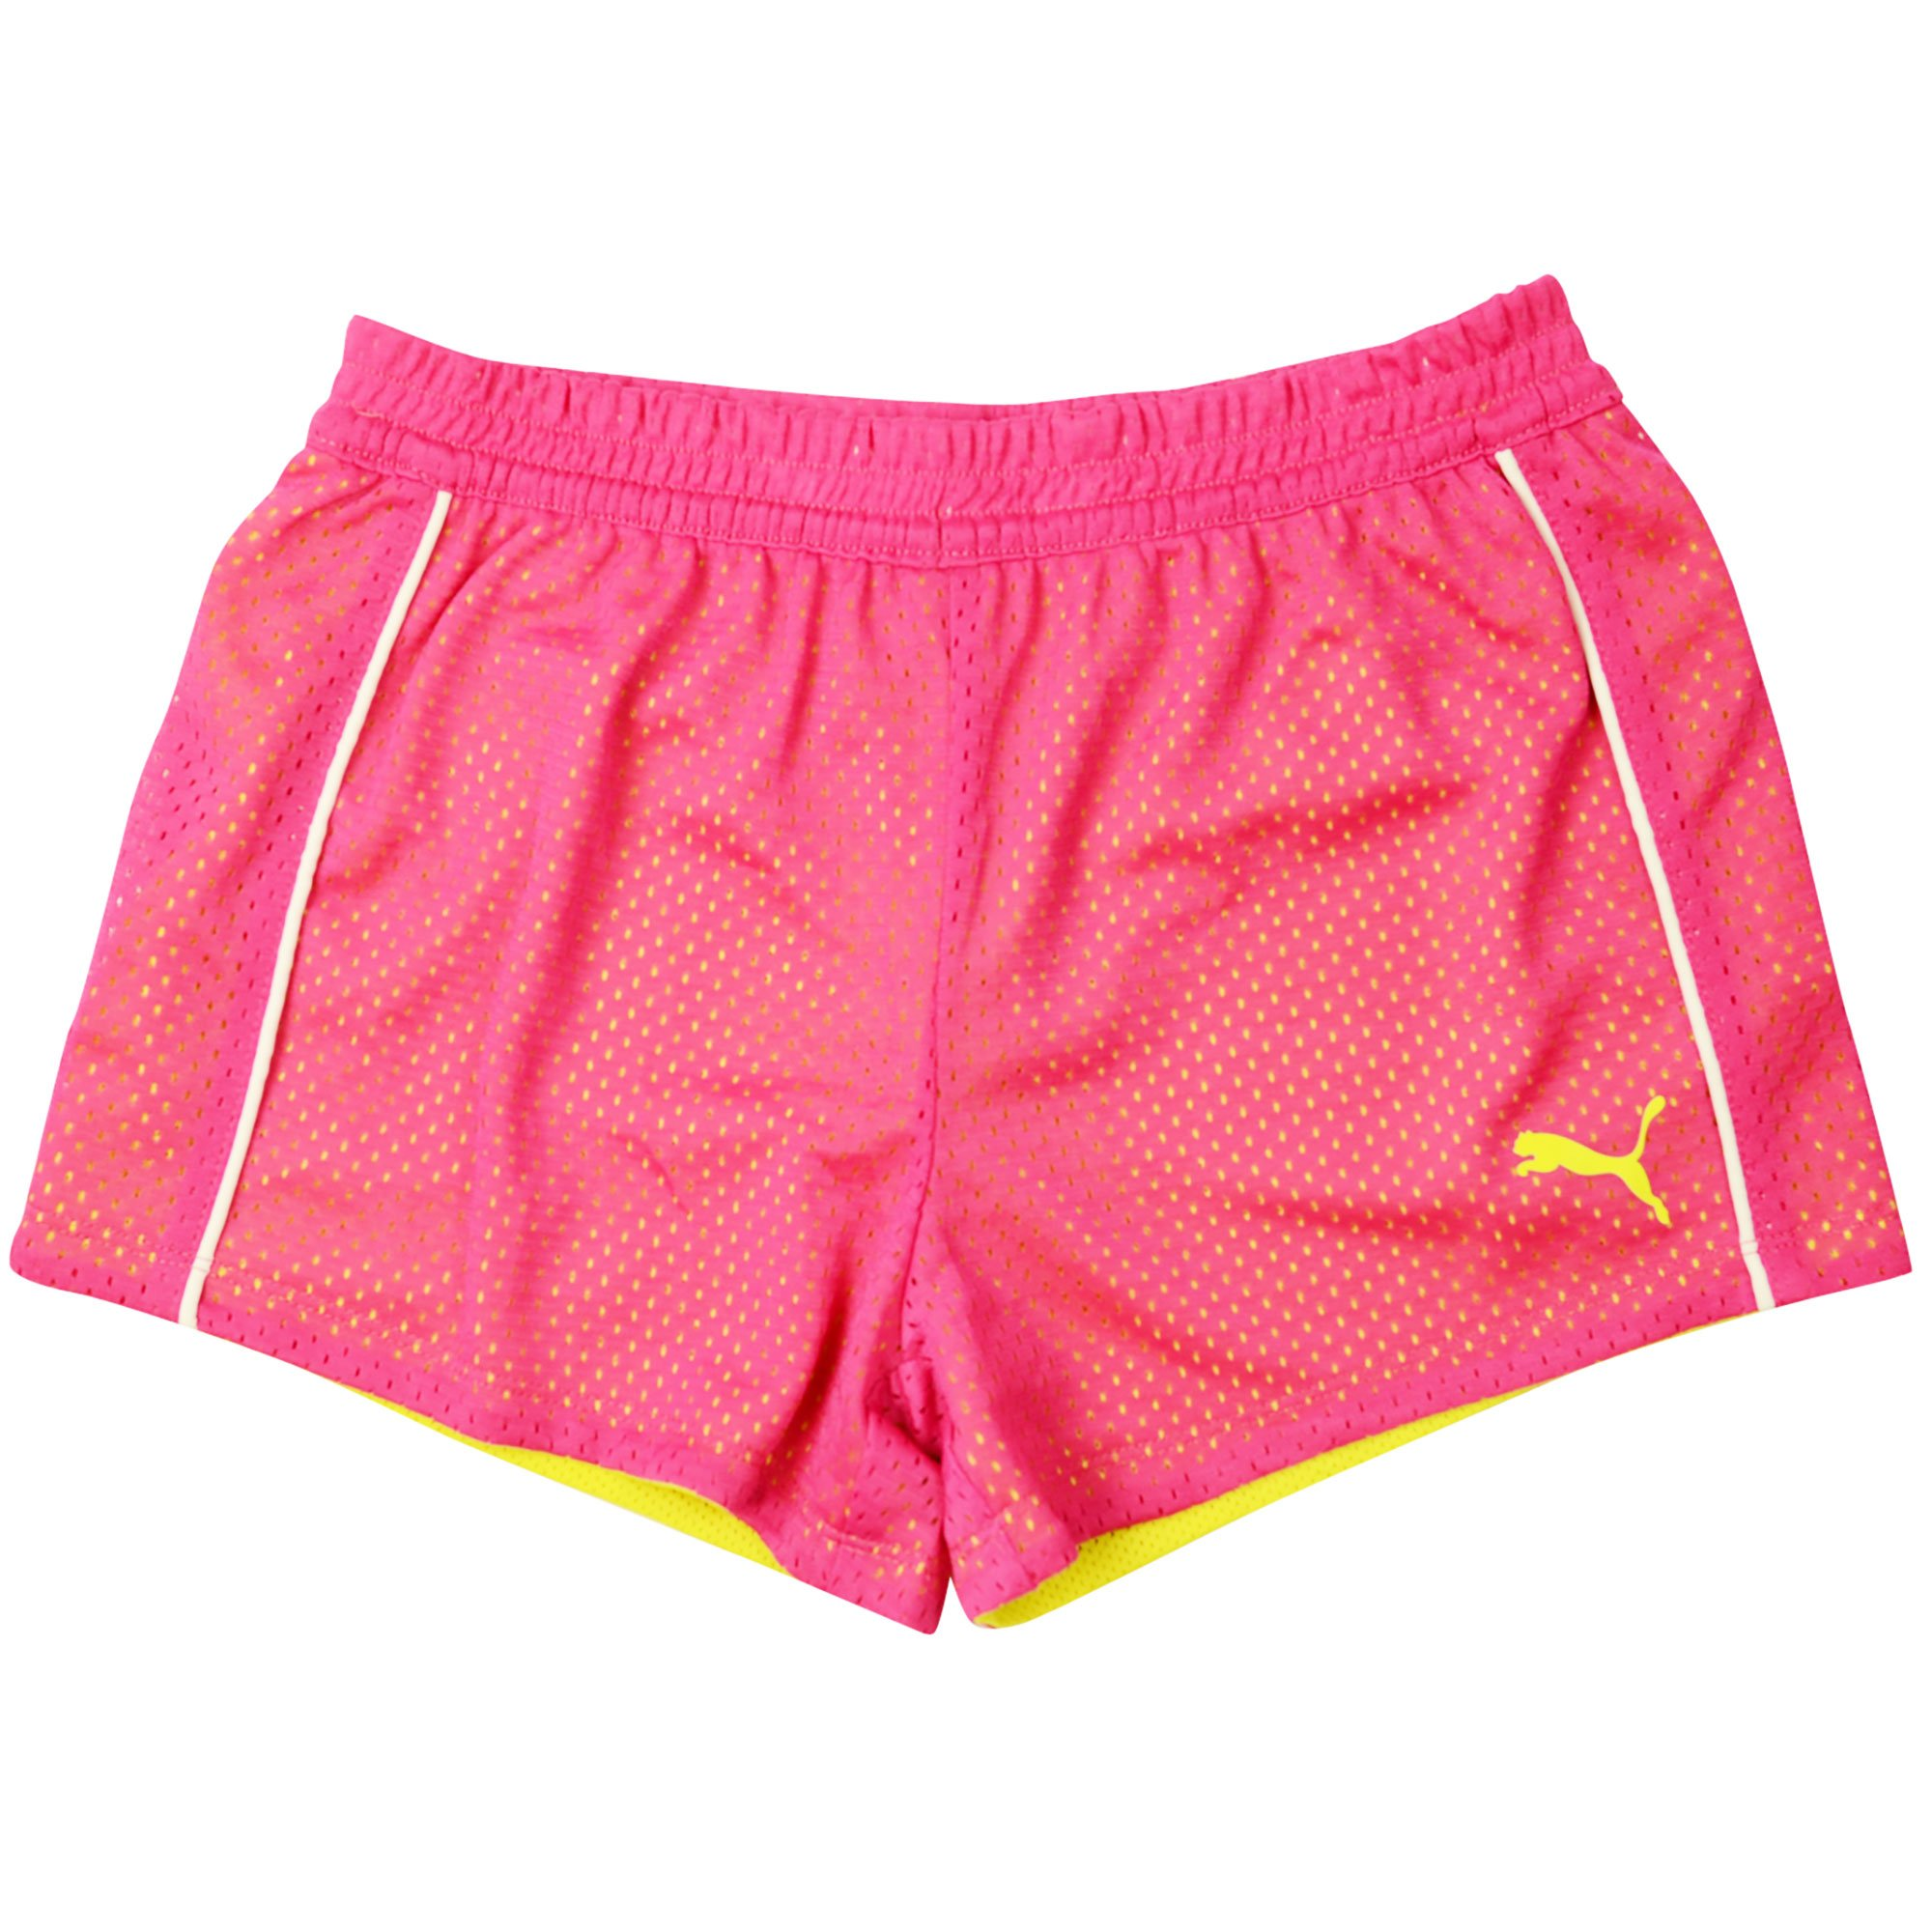 PUMA Little Girls' Active Double Mesh Short, Pink Glo, 5